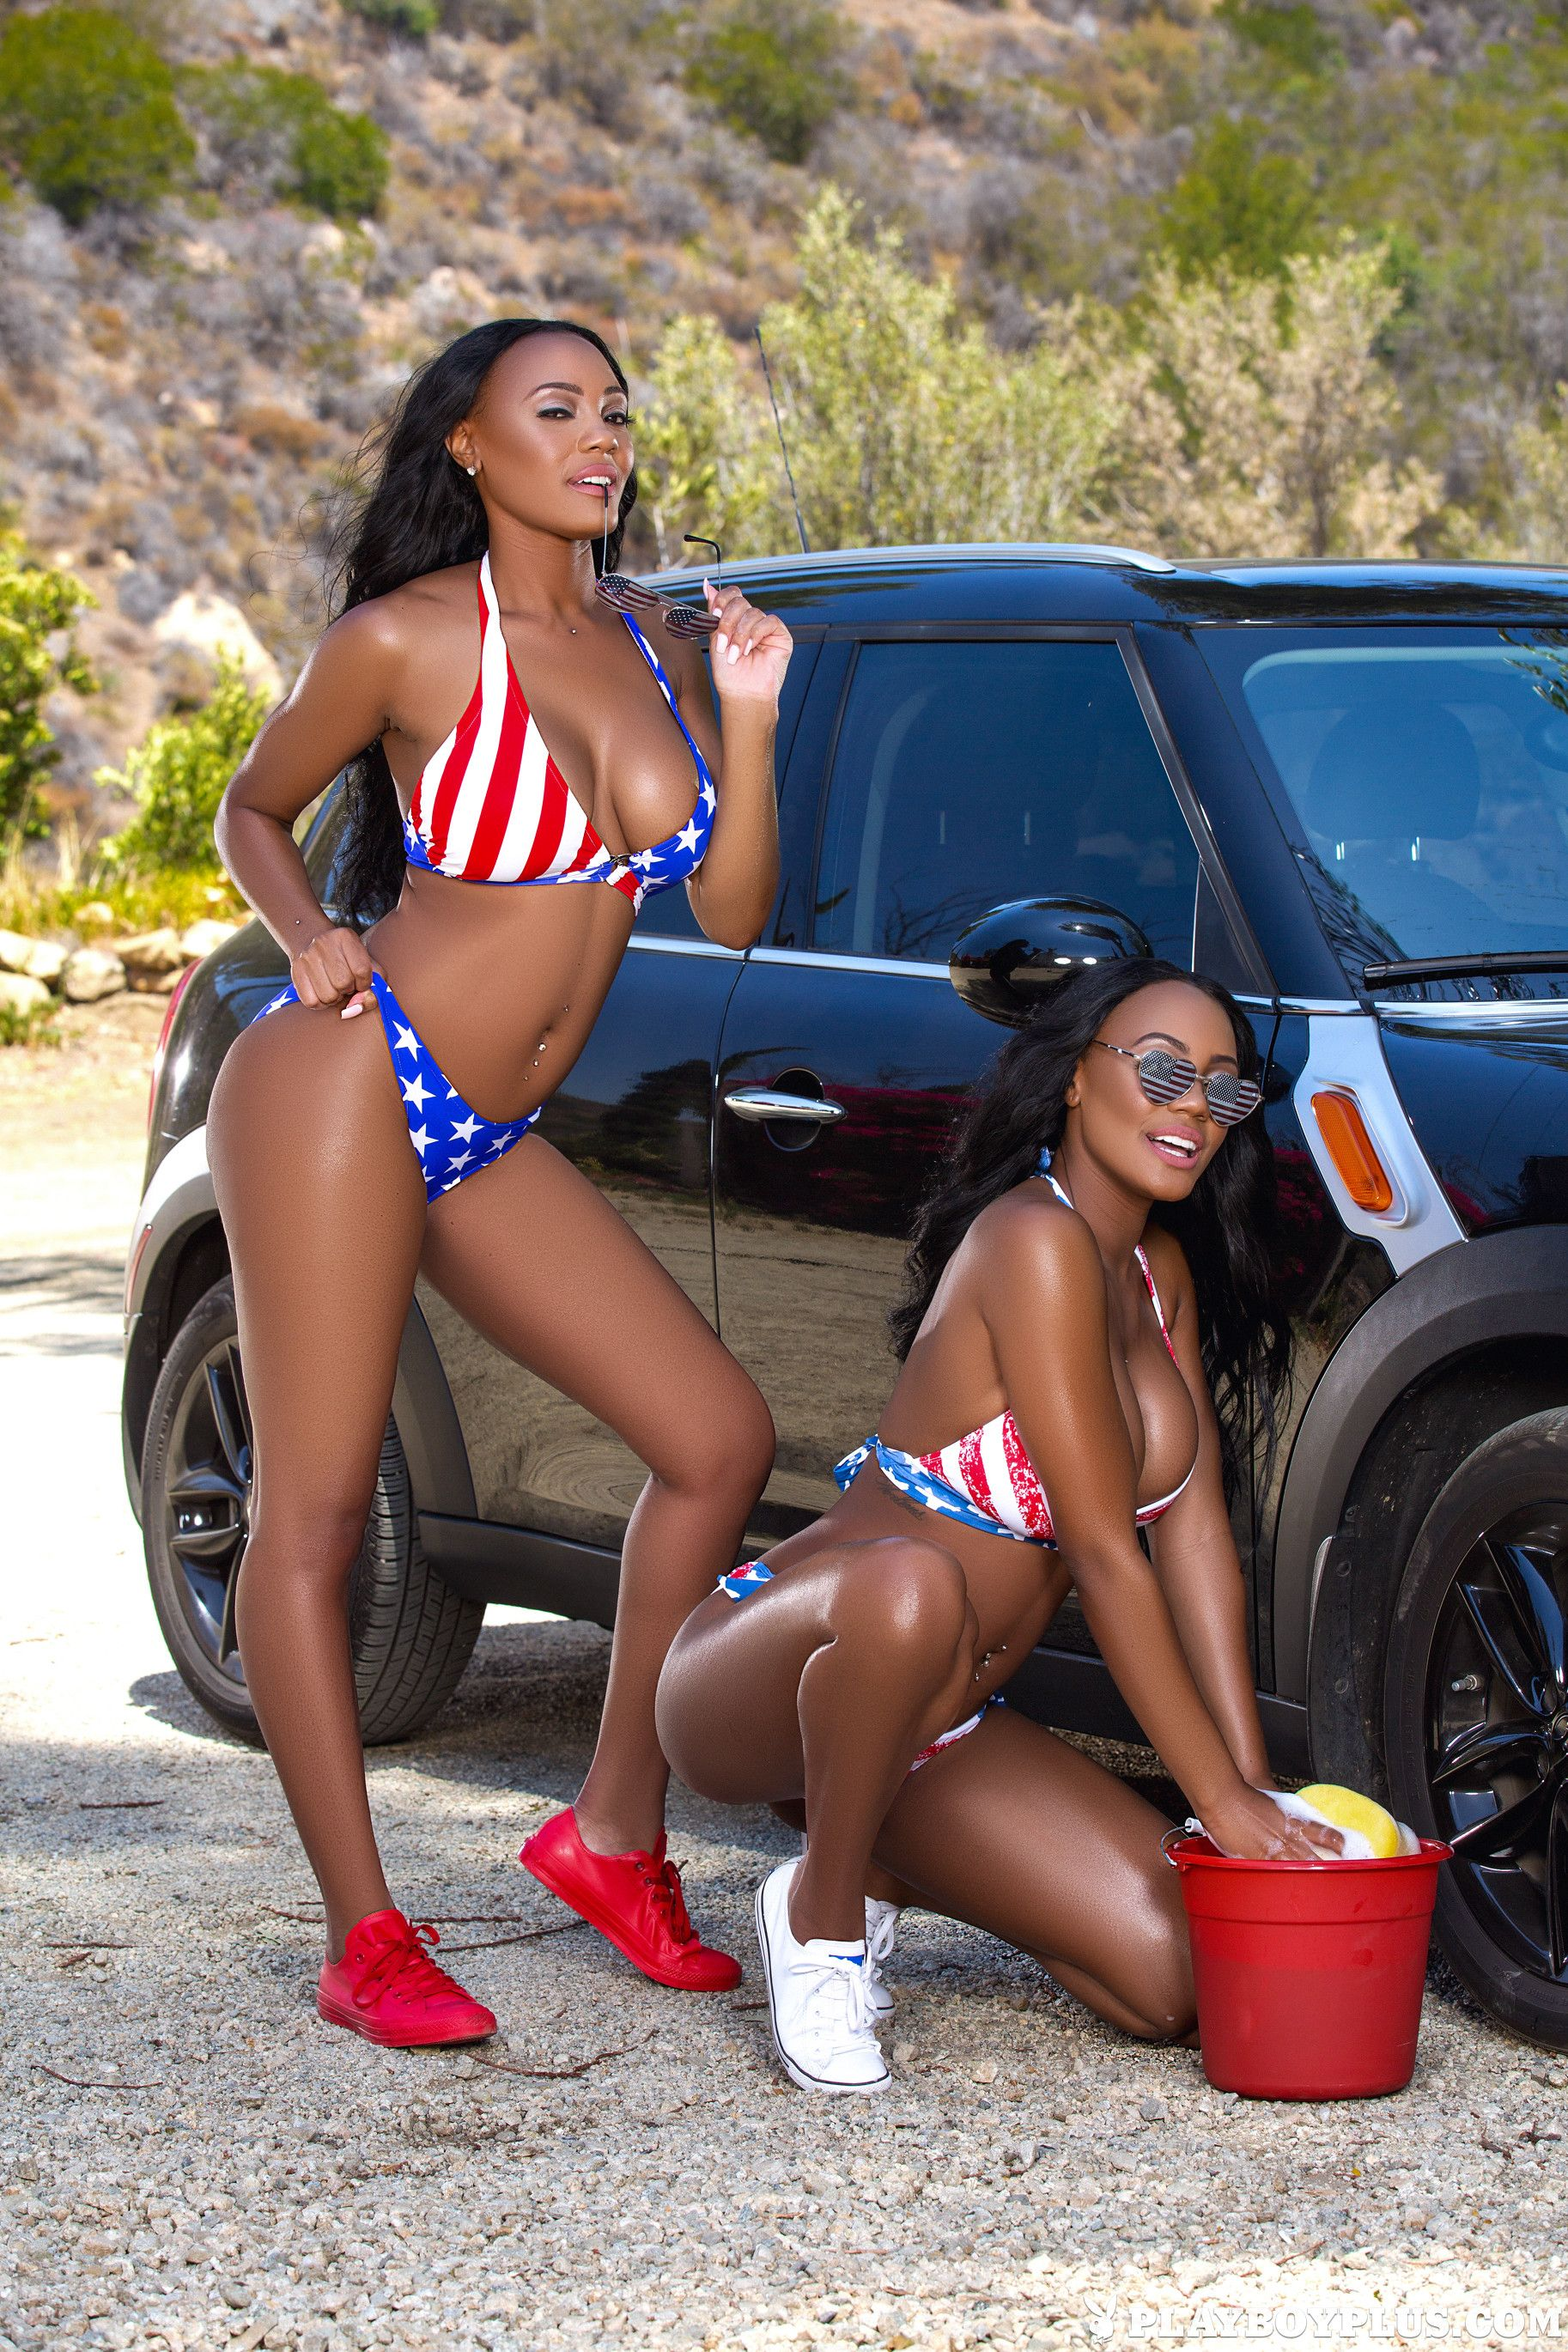 Naked Bikini Car Wash